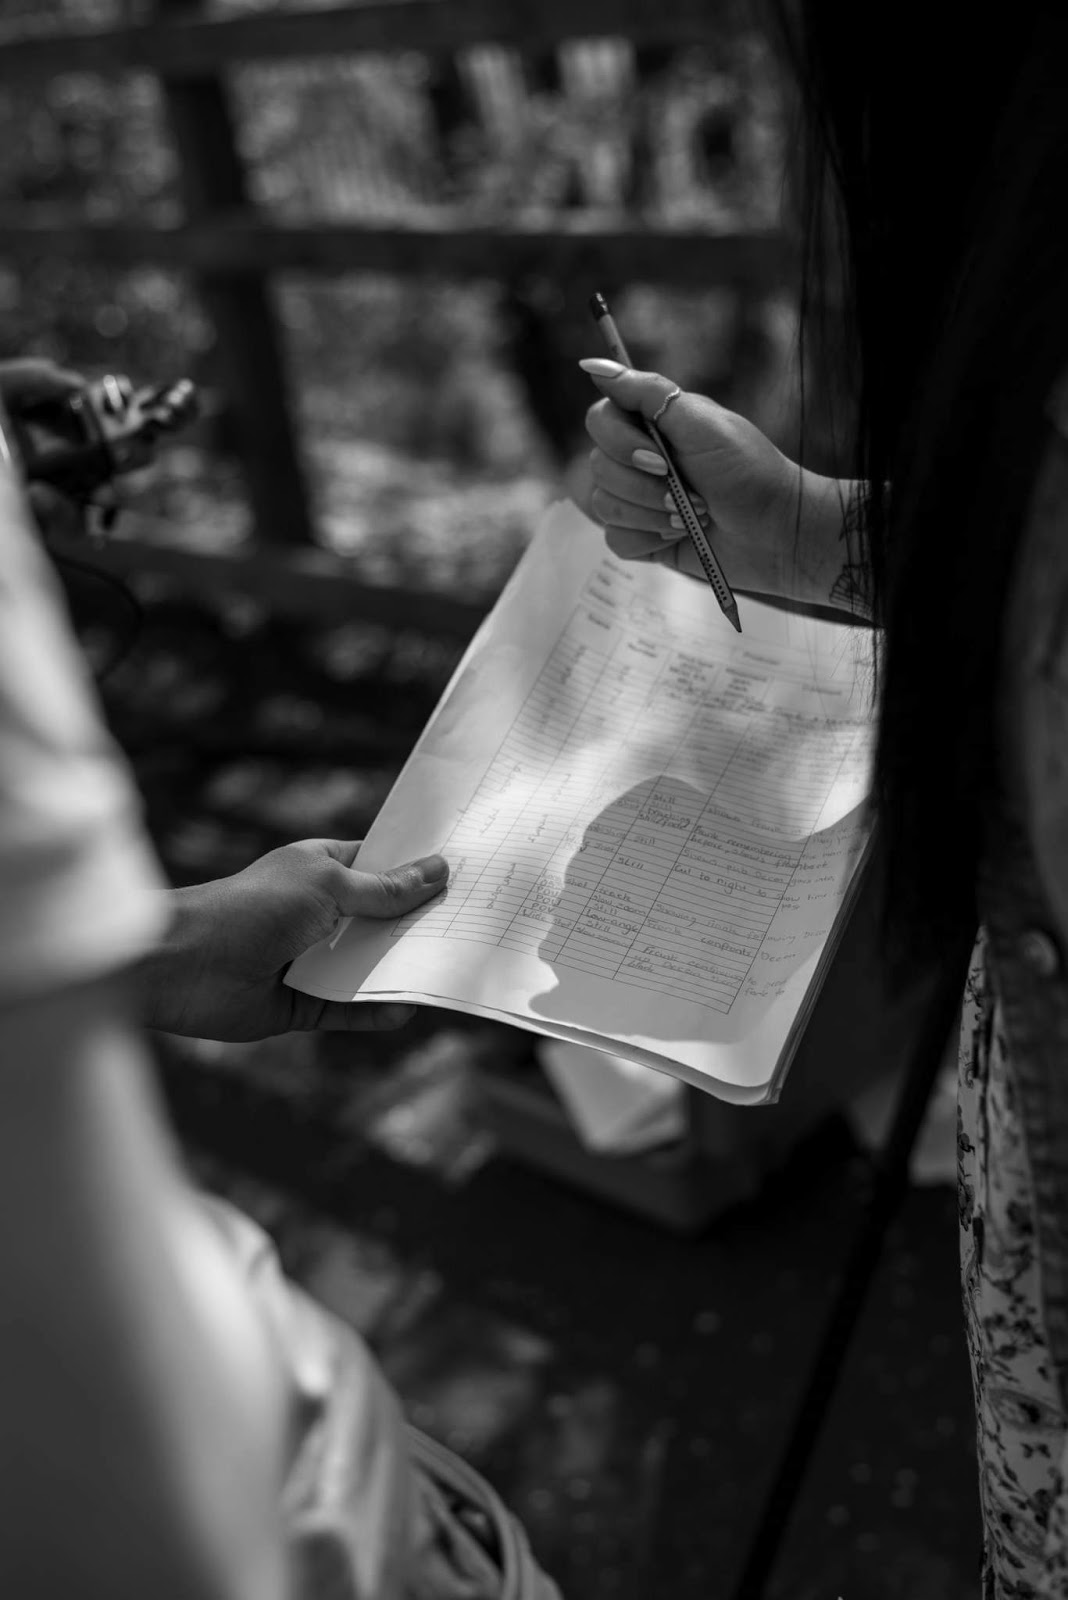 A black and white photo by Andrew dunn, a close up of a shot list with a man holding the paper and myself looking at the paper